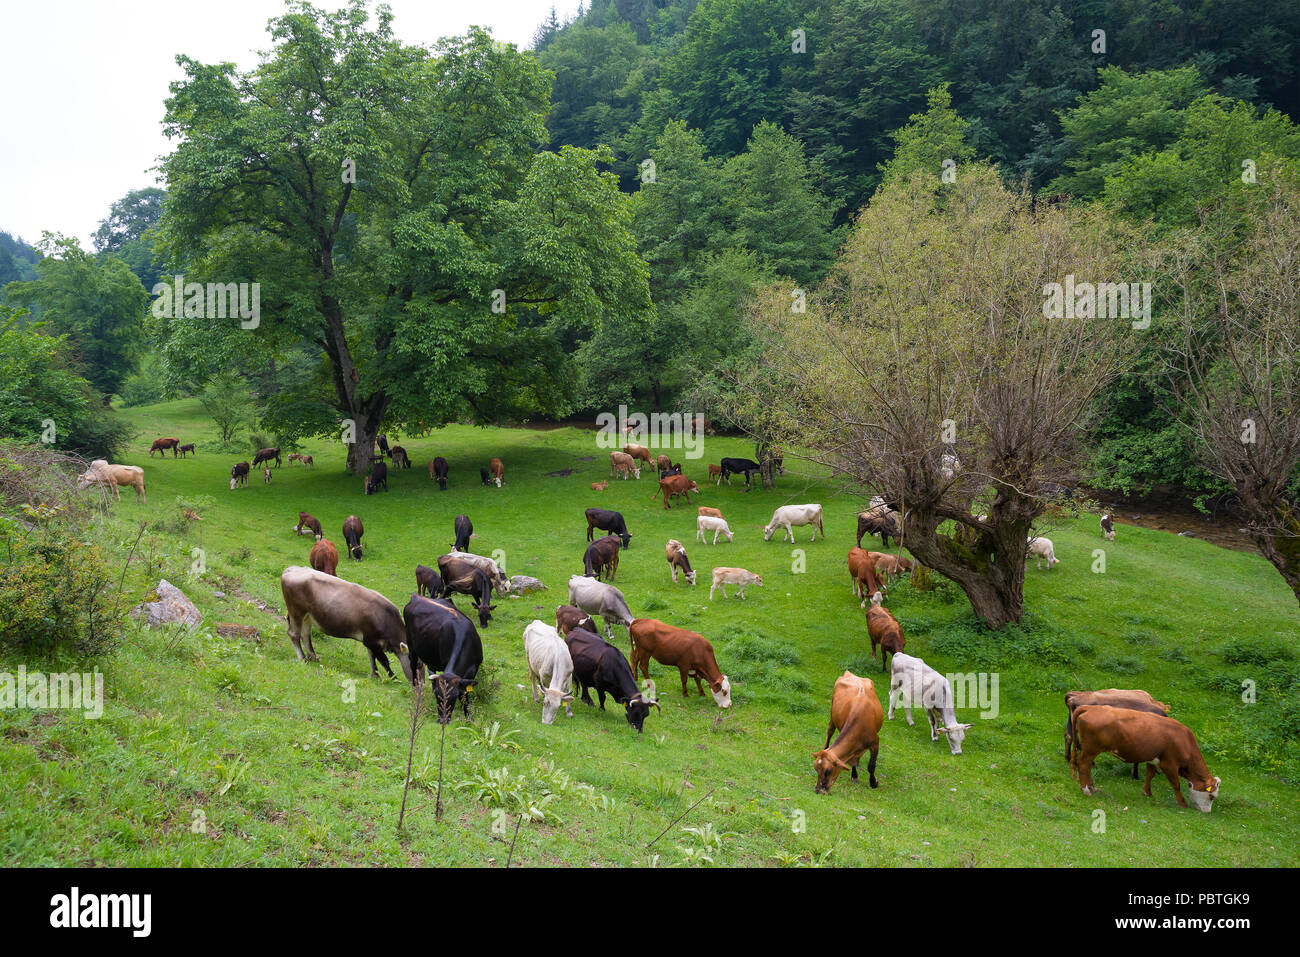 Herd of bulls, cows and calves grazing in meadow with fresh grass. Rancho. - Stock Image